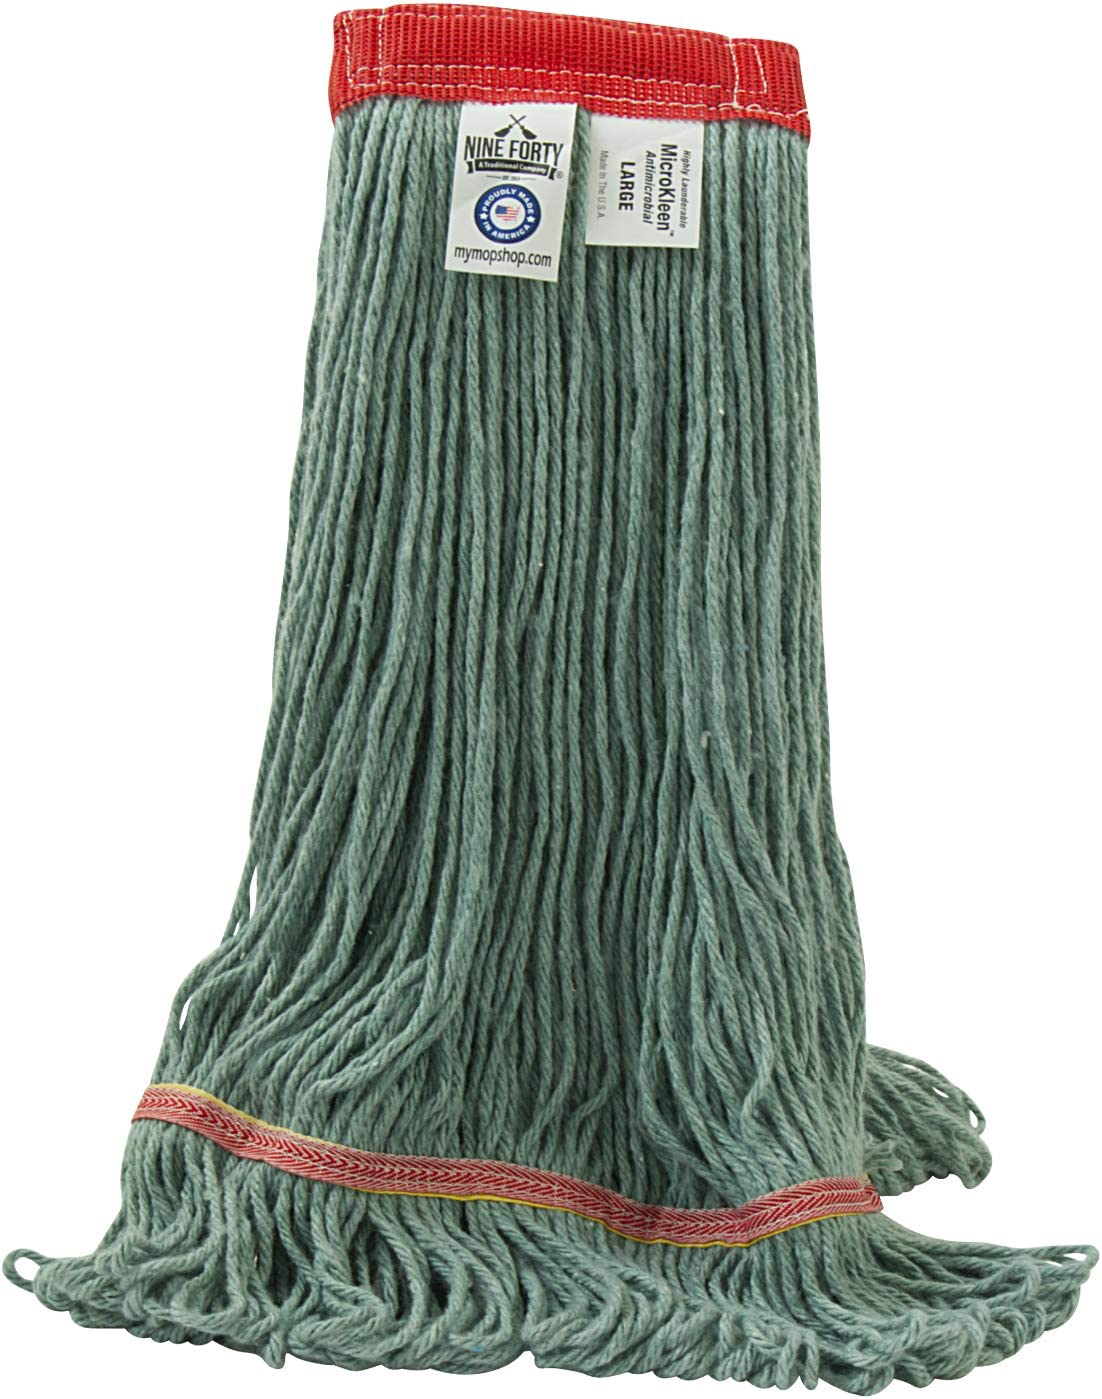 Now free shipping NINE FORTY - Antimicrobial Looped End Mop Head Refill USA Wet supreme